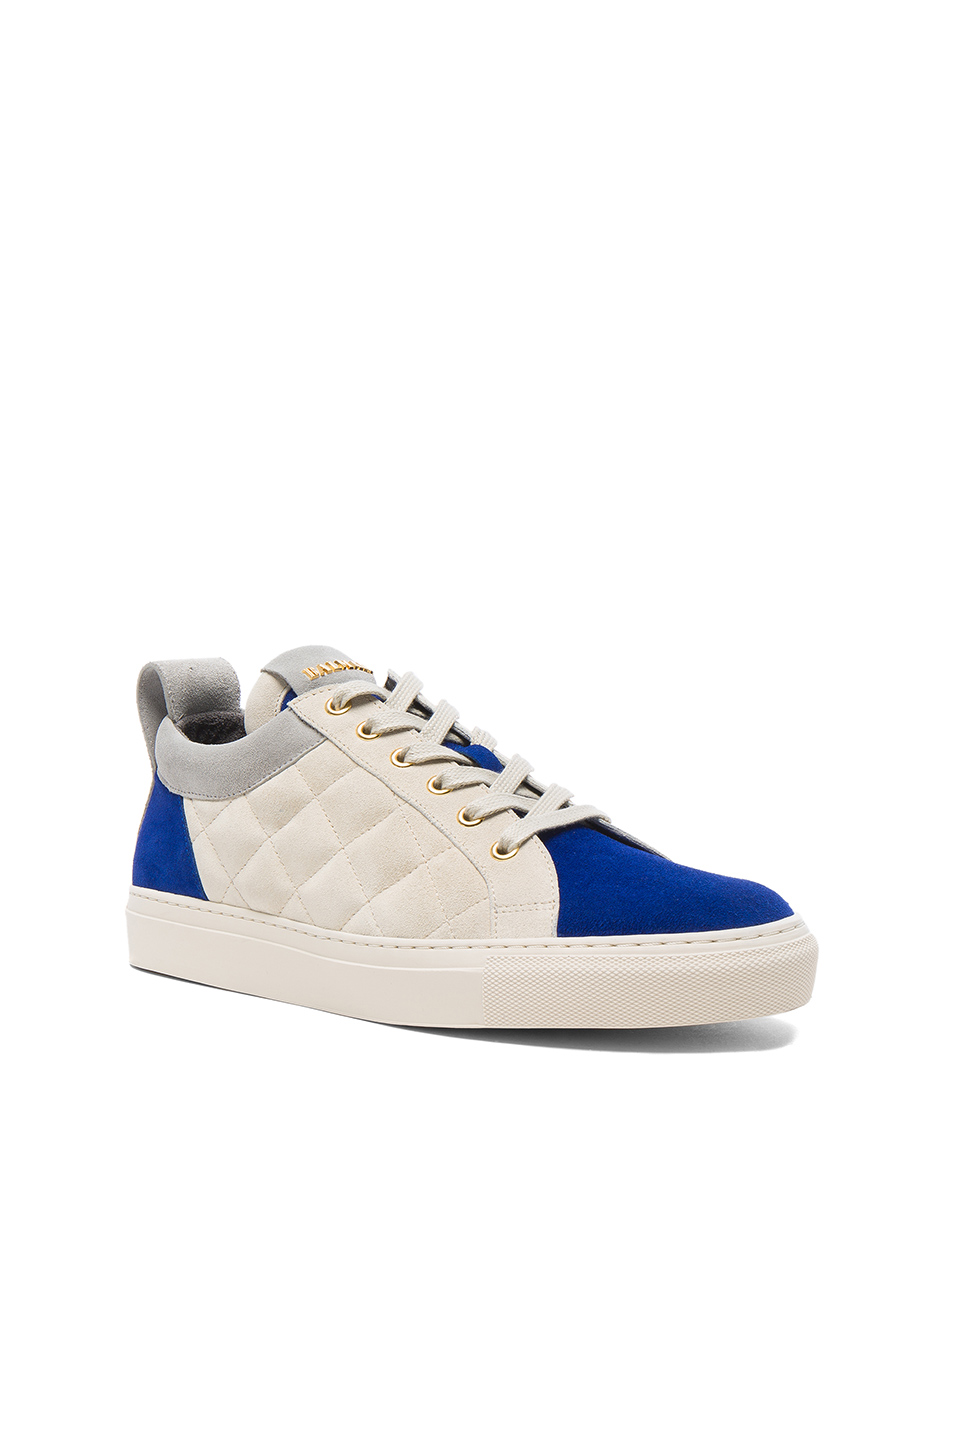 BALMAIN Quilted Suede Sneakers in Gray,Blue